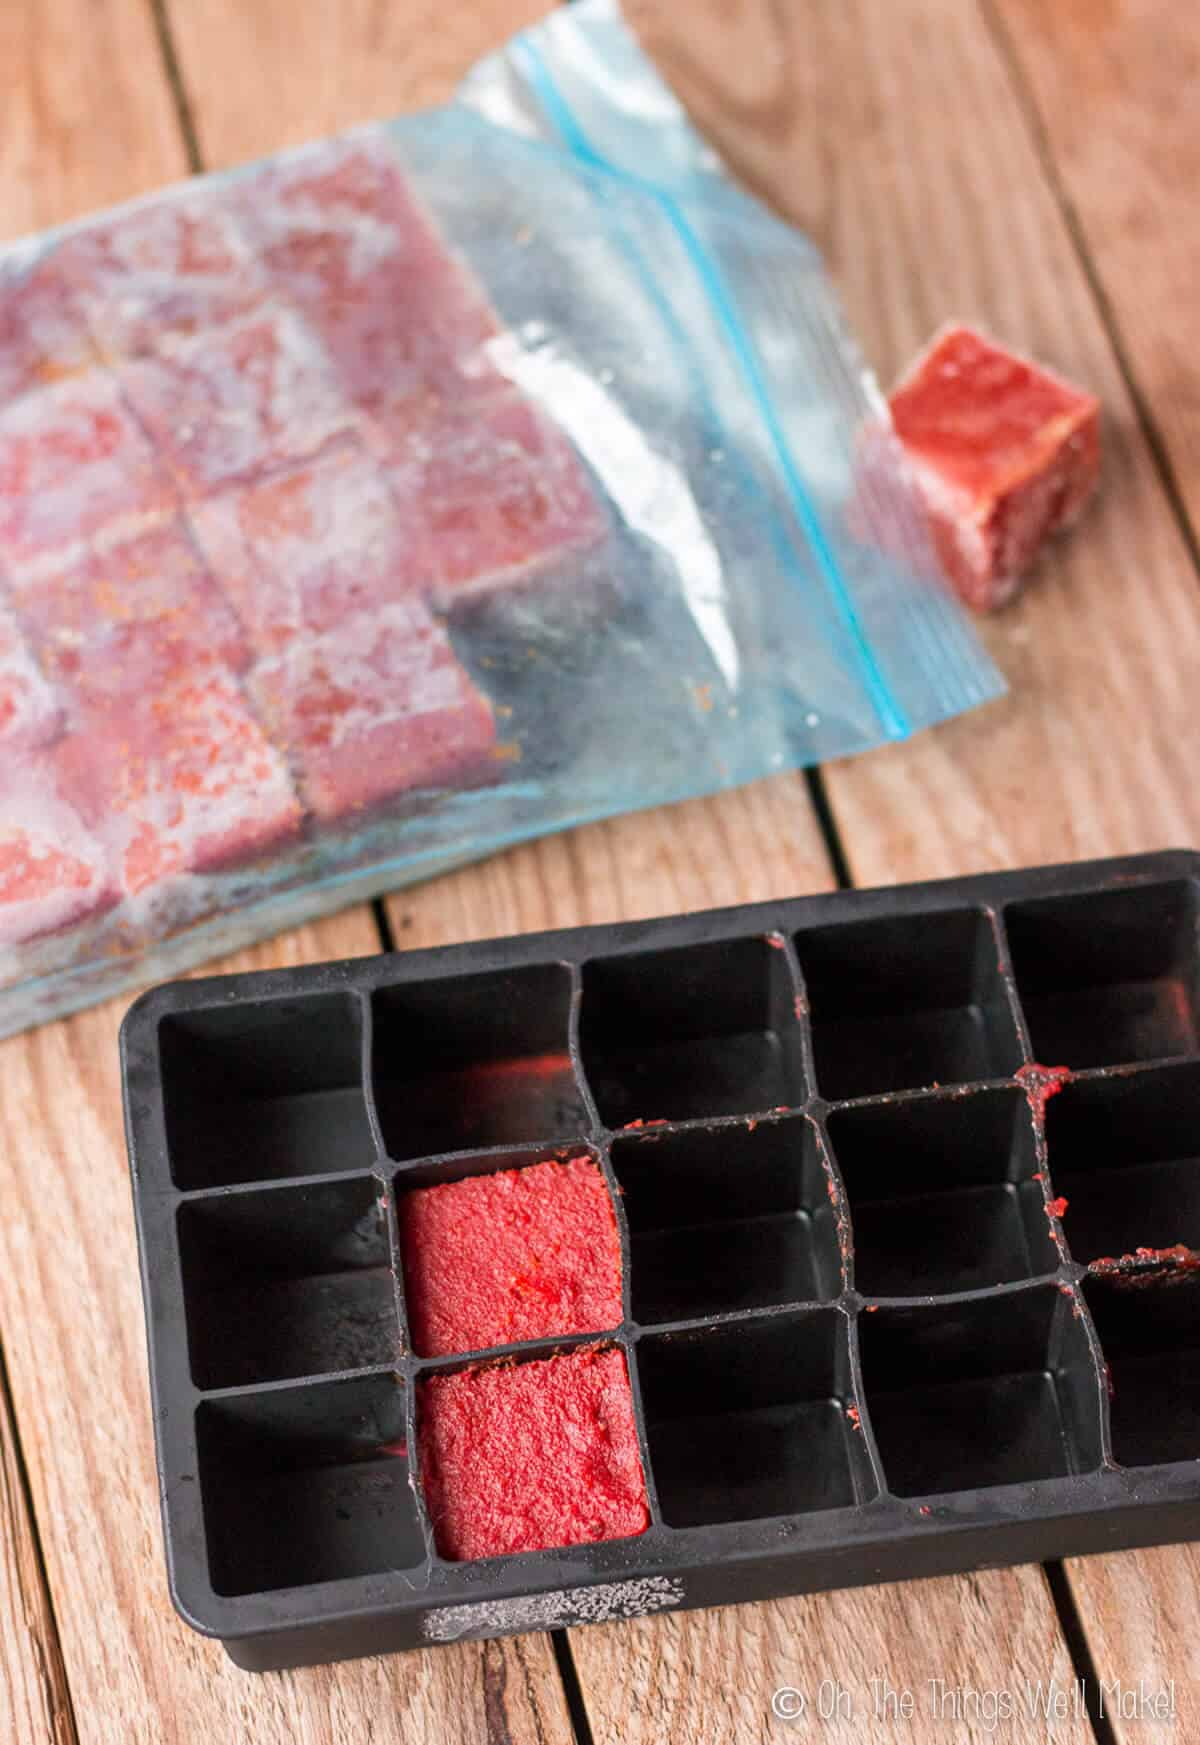 Overhead view of homemade tomato paste in ice cube trays for freezing and storing.